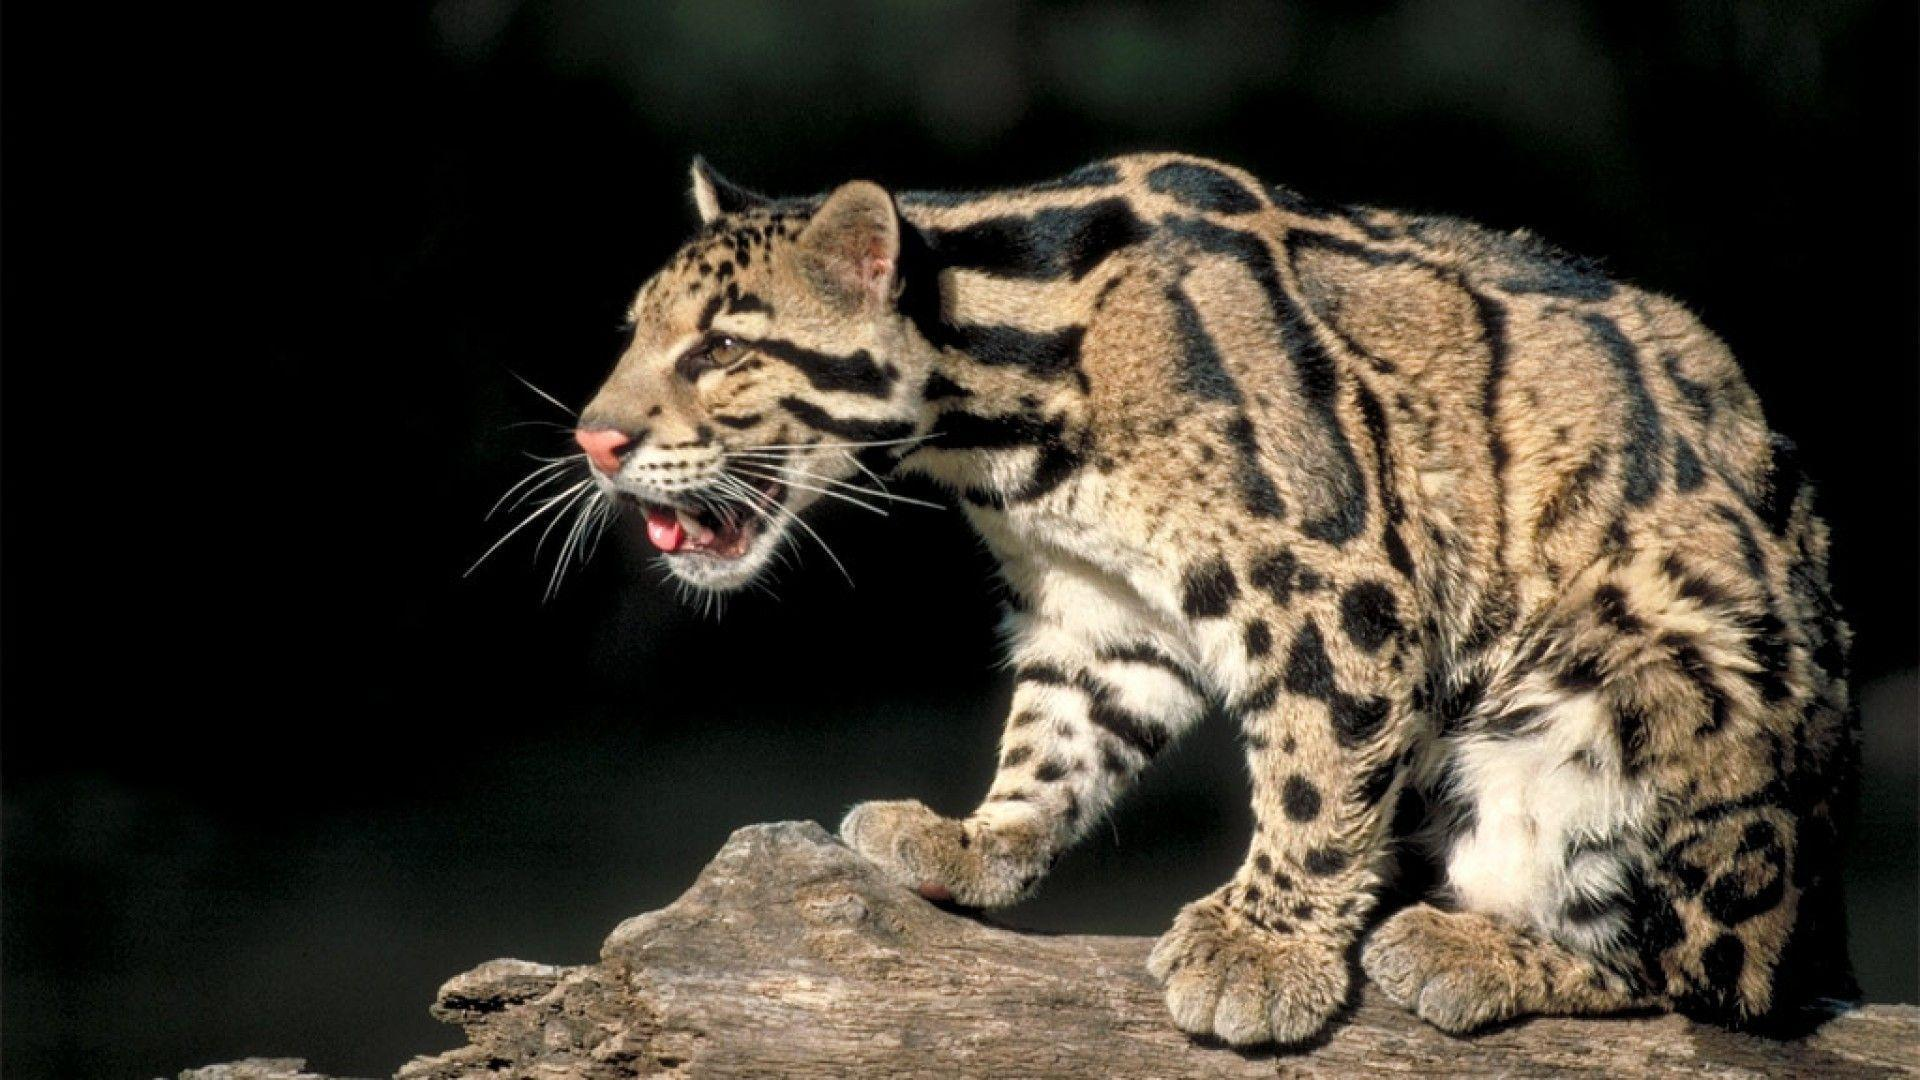 clouded leopard wallpaper - photo #5